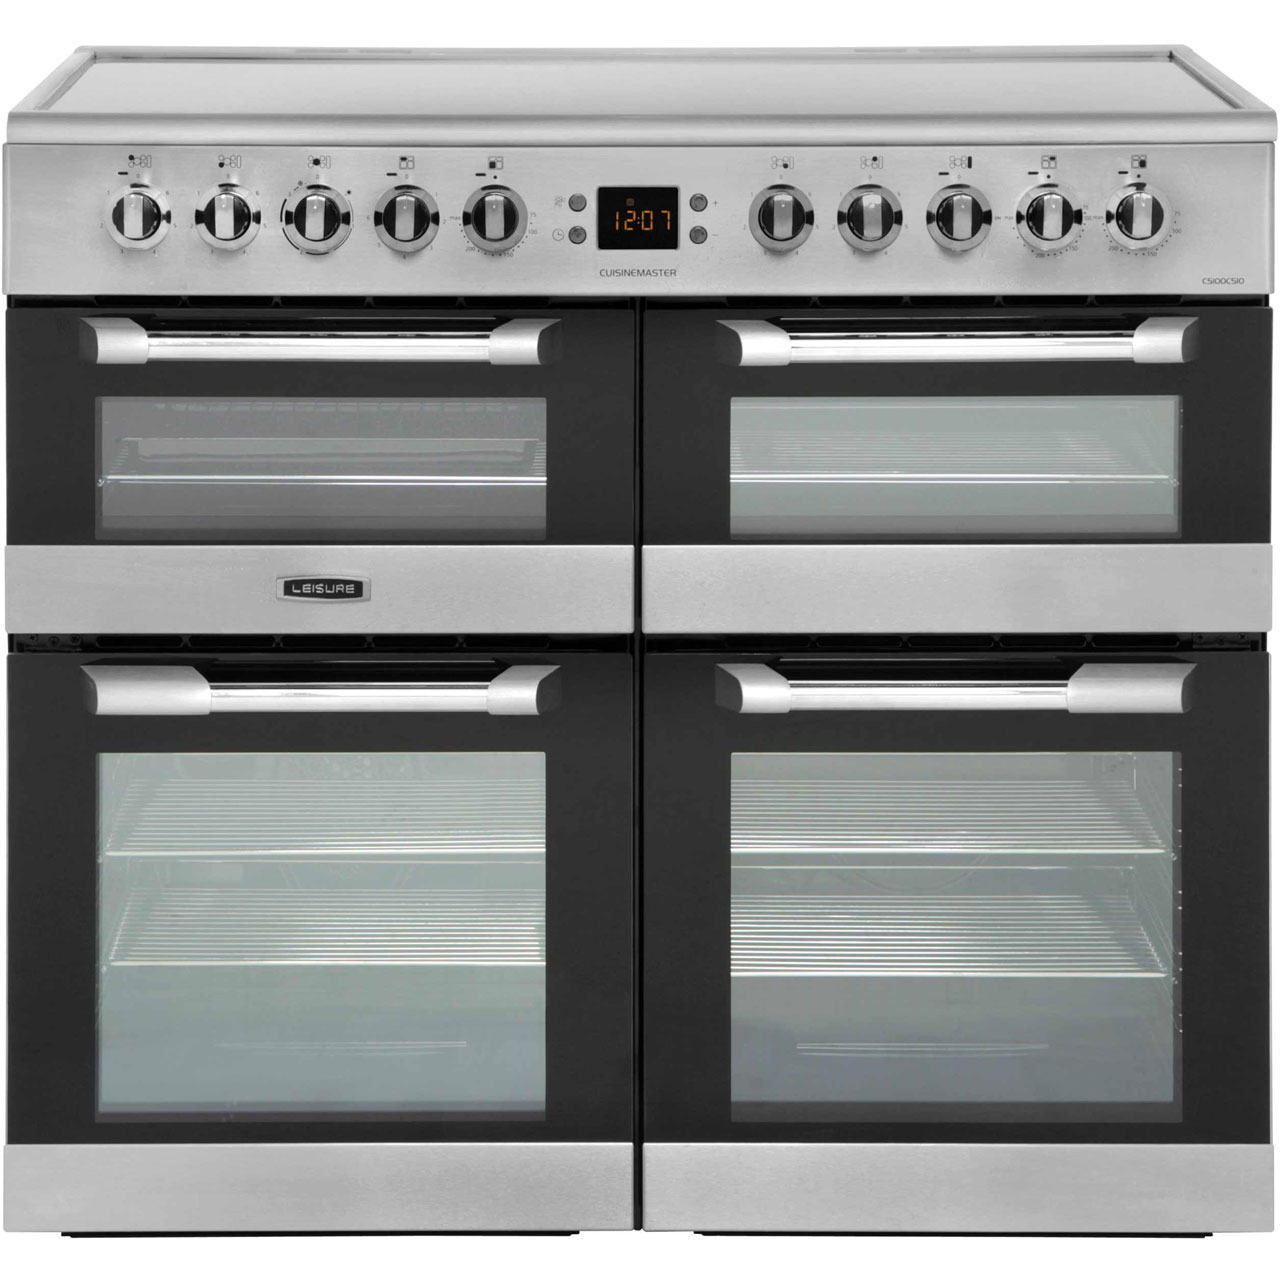 Leisure Cuisinemaster Cs100c510x 100cm Electric Range